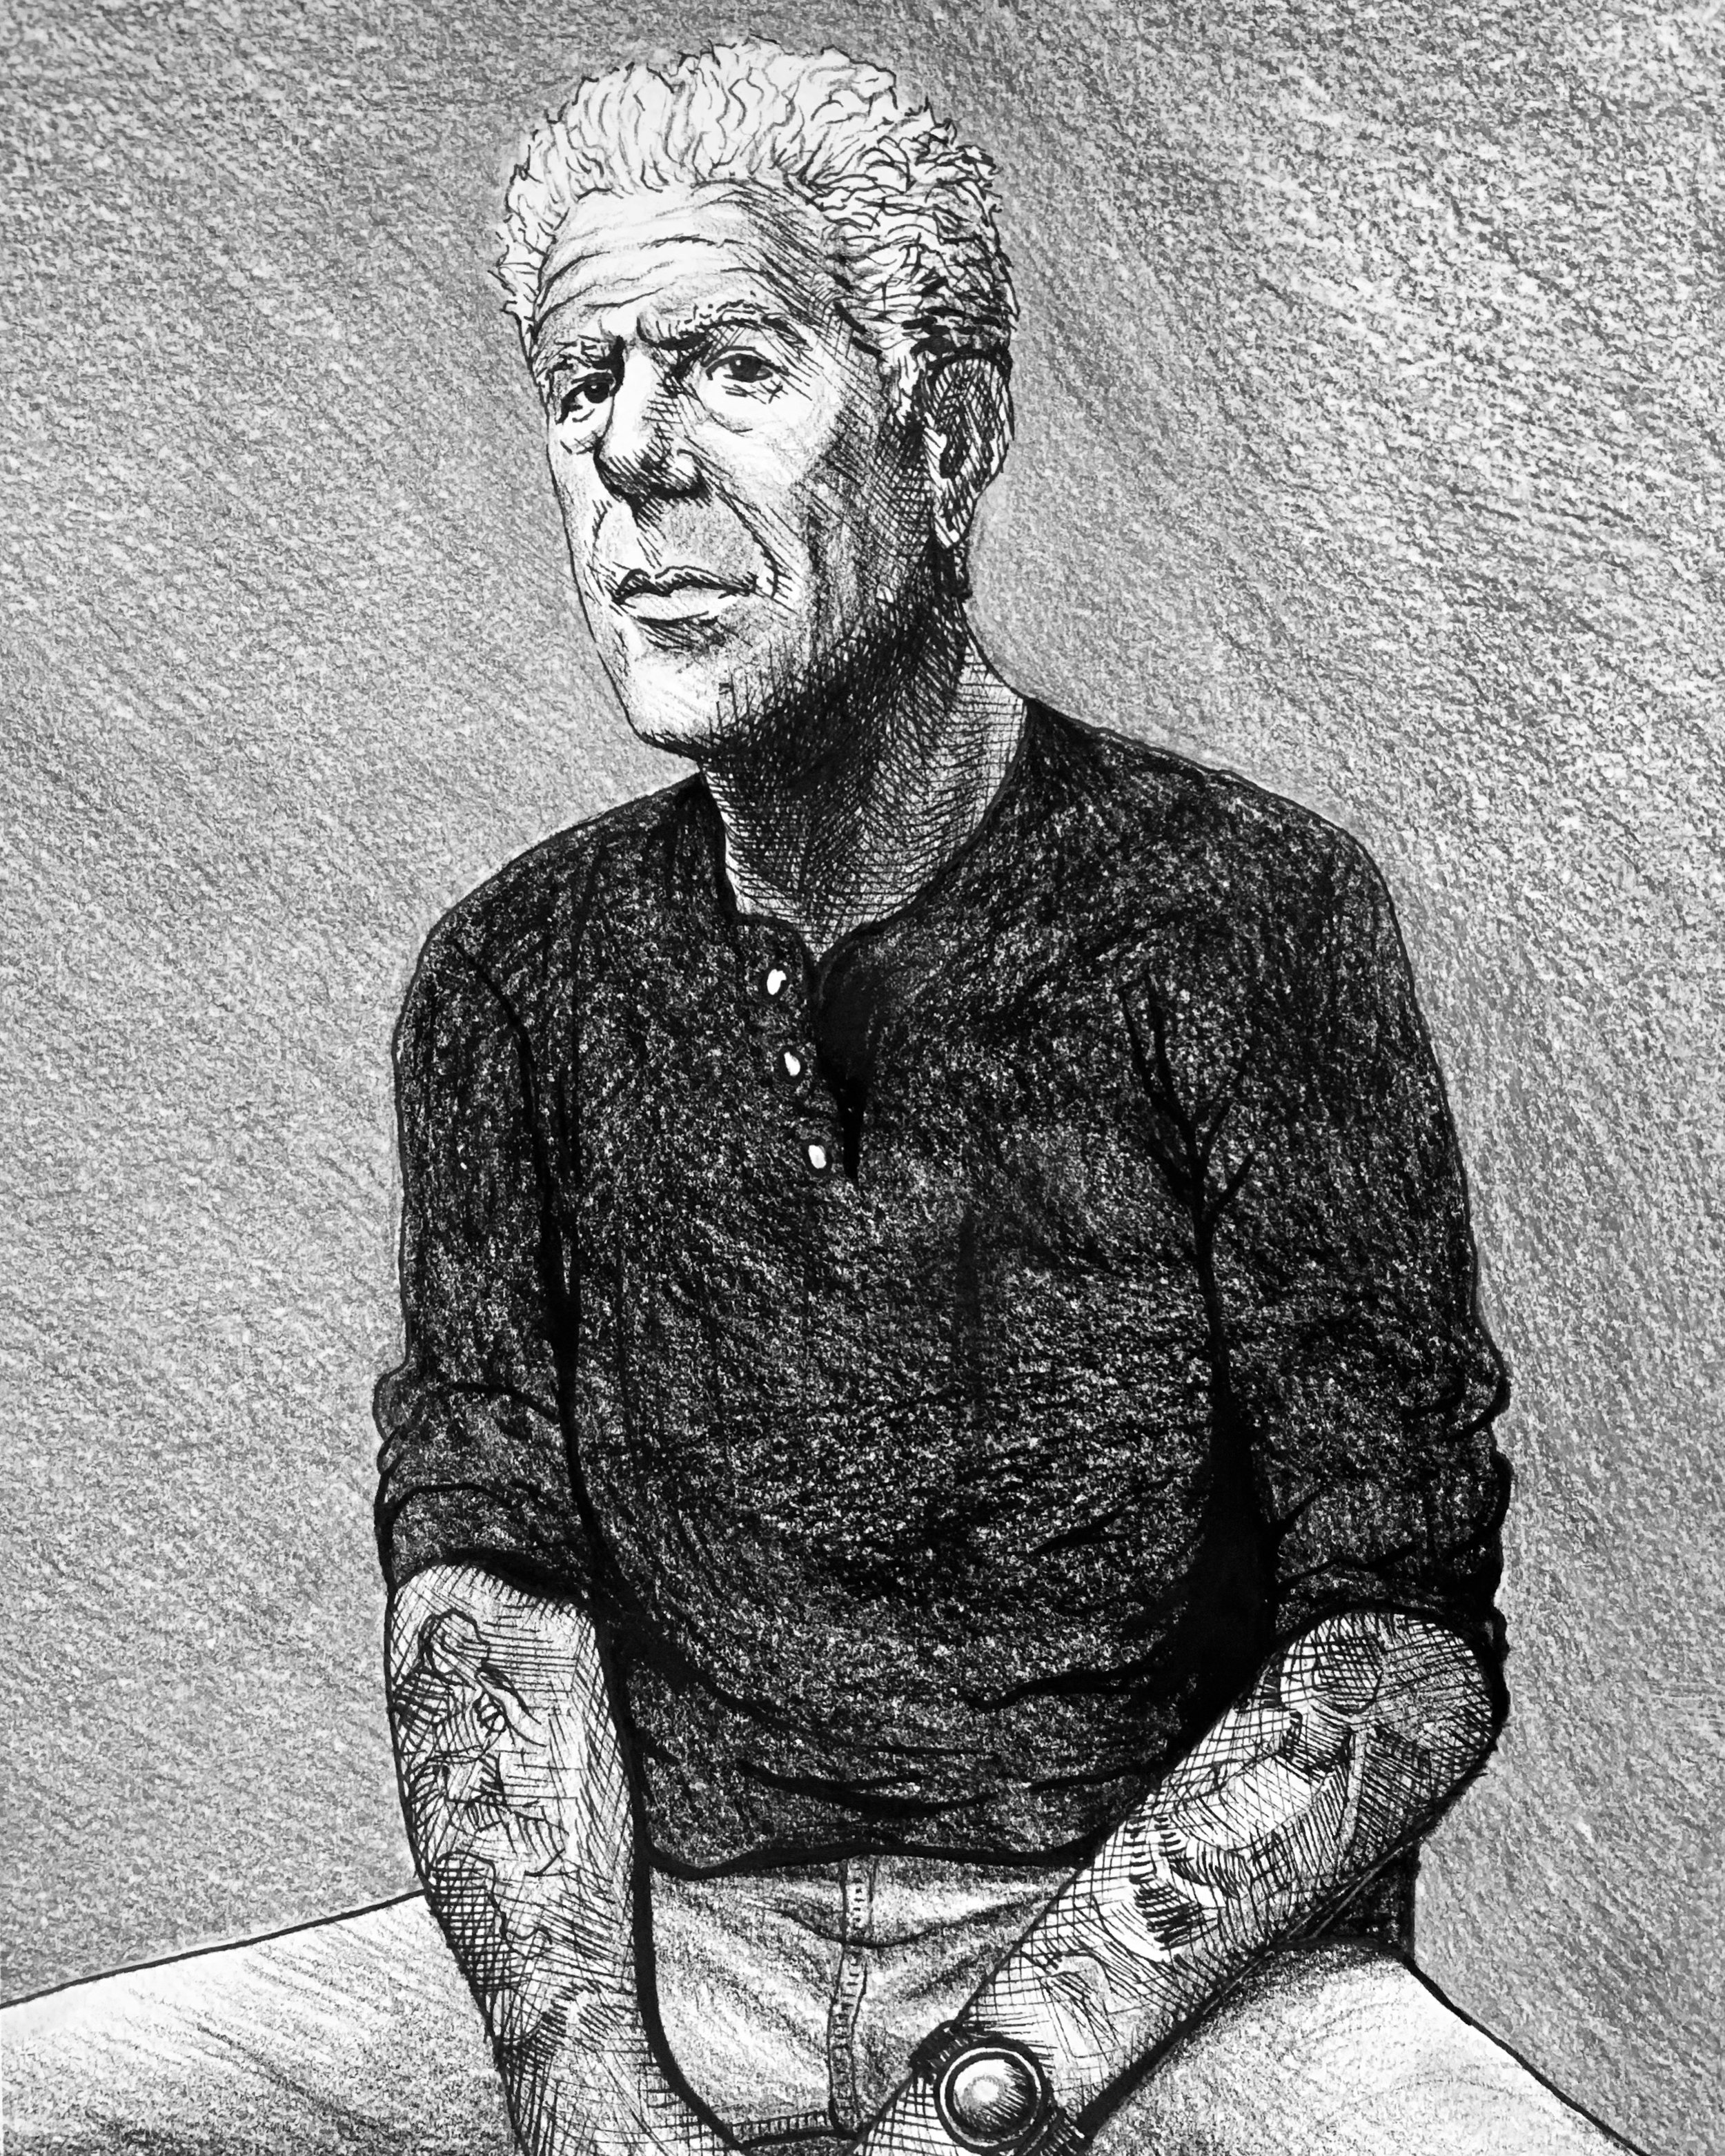 Anthony Bourdain - 2019 (pen and pencil)